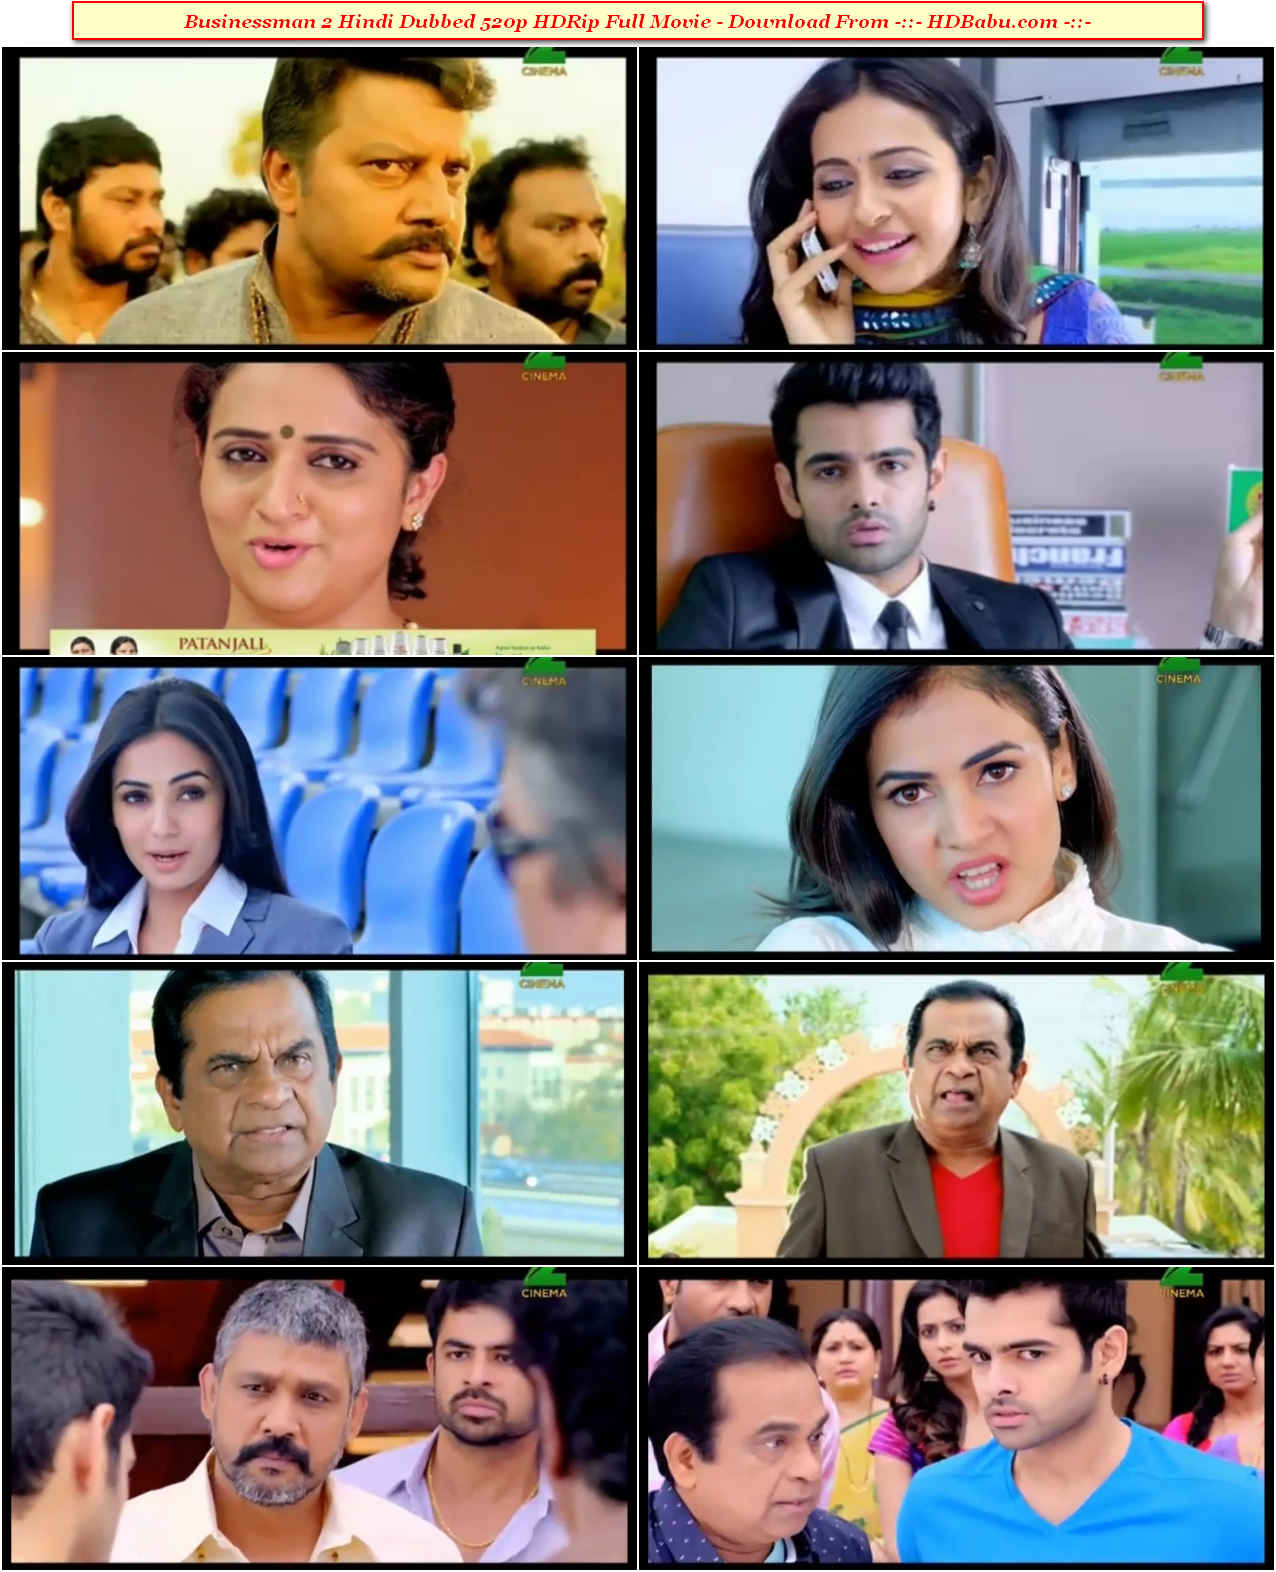 Businessman 2 Hindi Dubbed Full Movie Download